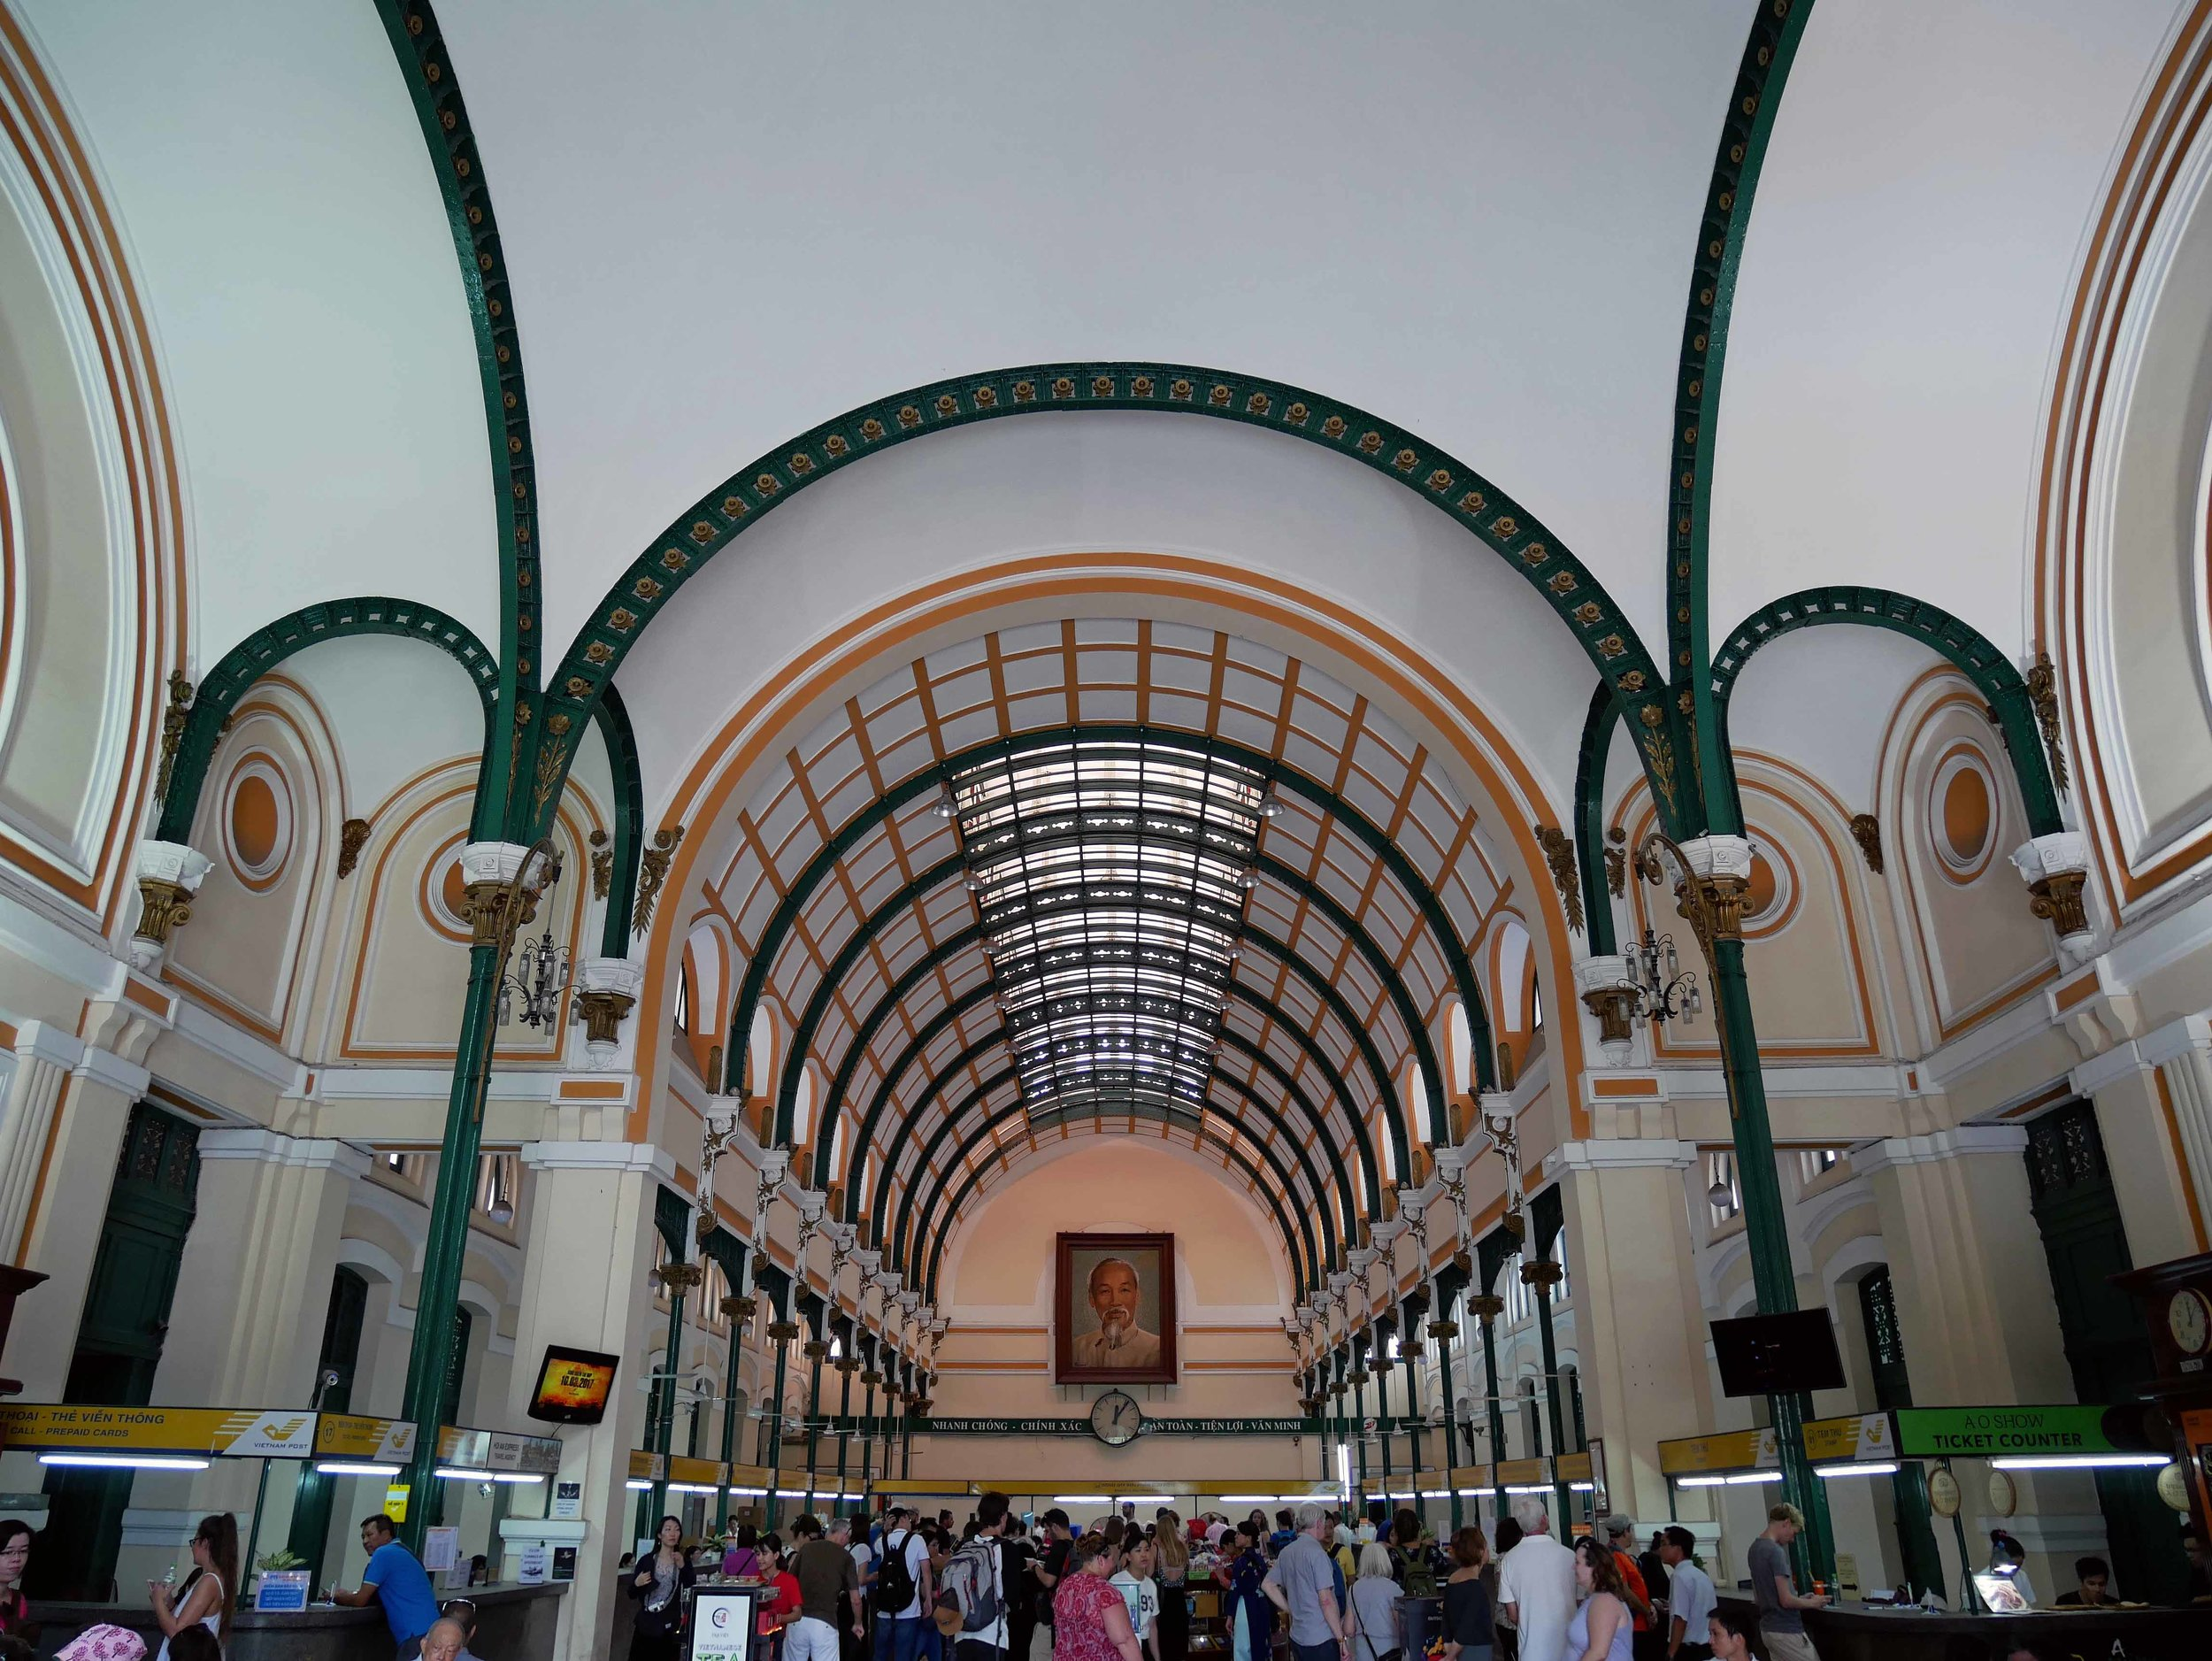 The interior of the Post Office features high arched ceilings and a portrait of former revolutionary leader Ho Chi Minh.